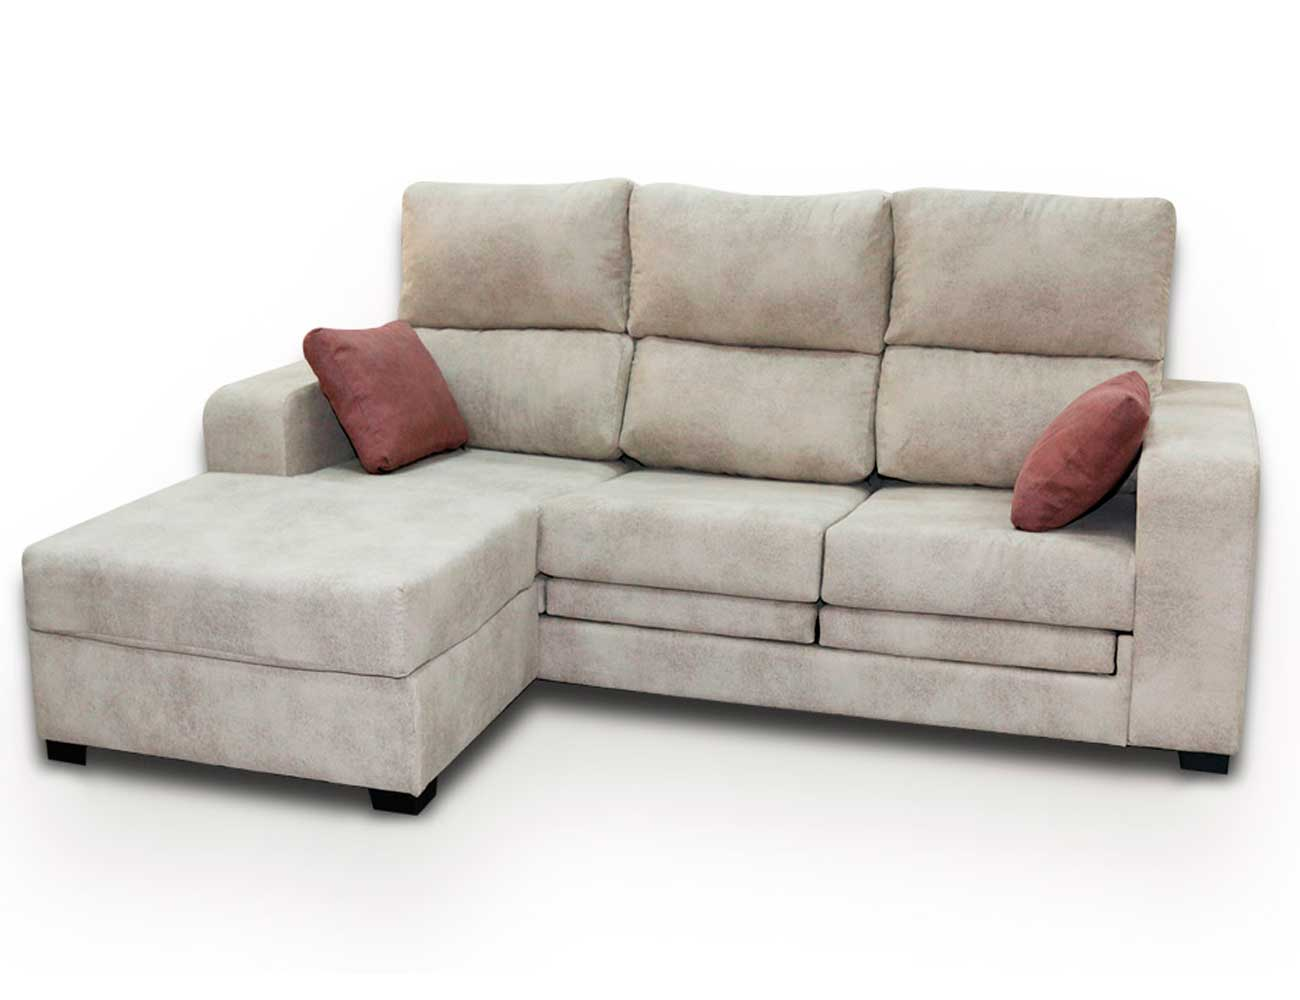 Sofa 3p puff reversible4